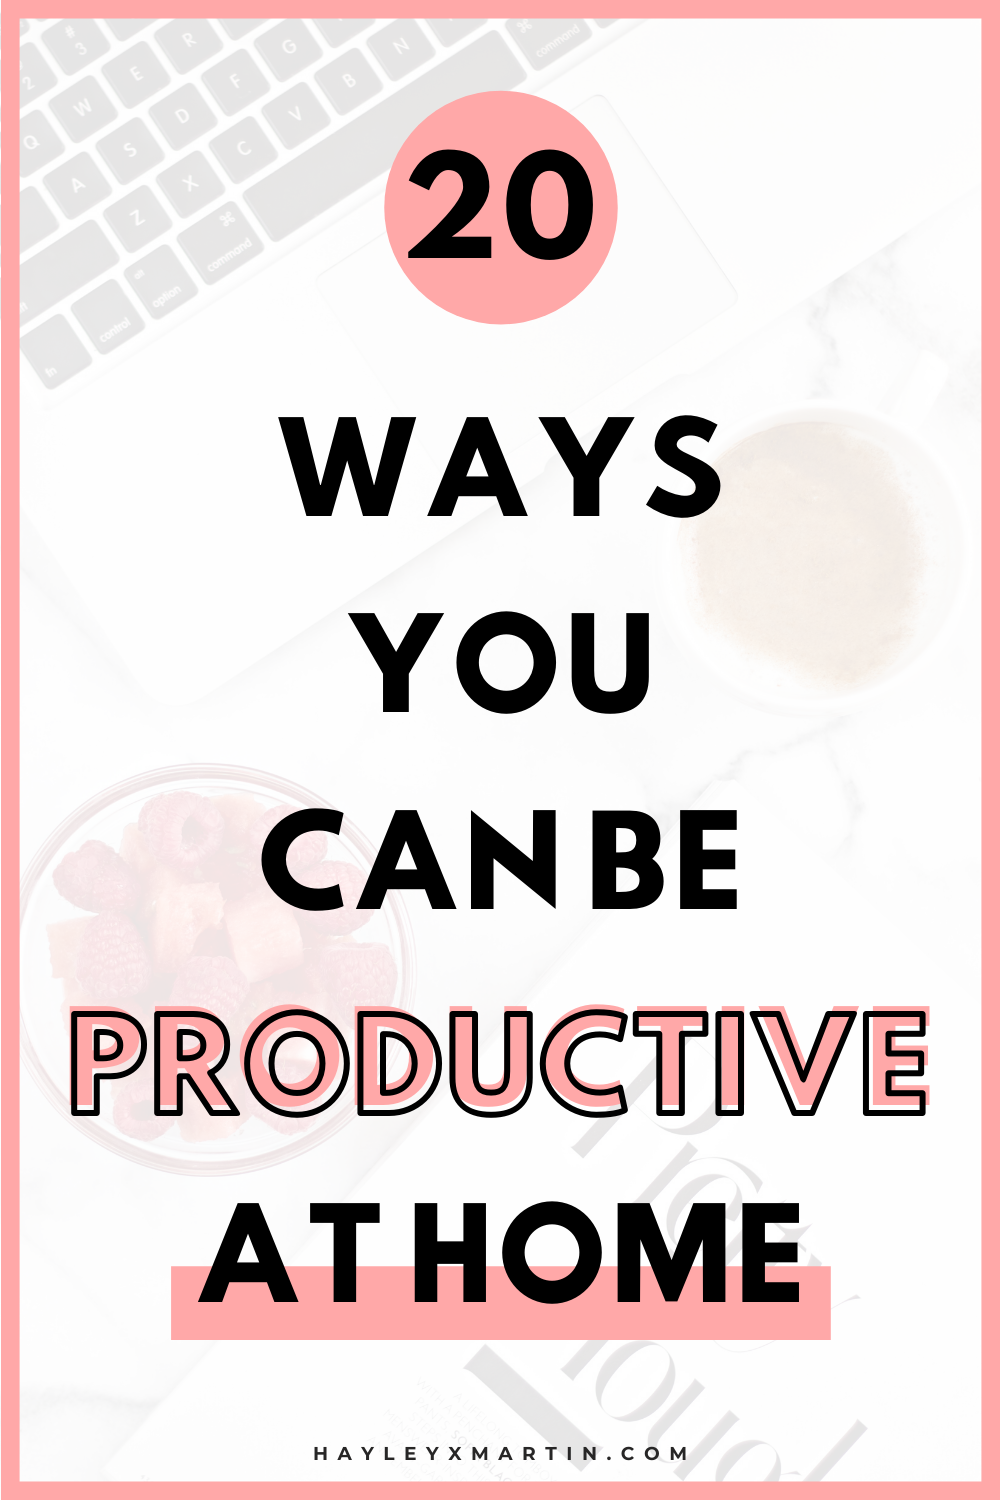 20 WAYS YOU CAN BE PRODUCTIVE AT HOME | PRODUCTIVE THINGS TO DO AT HOME | HAYLEYXMARTIN